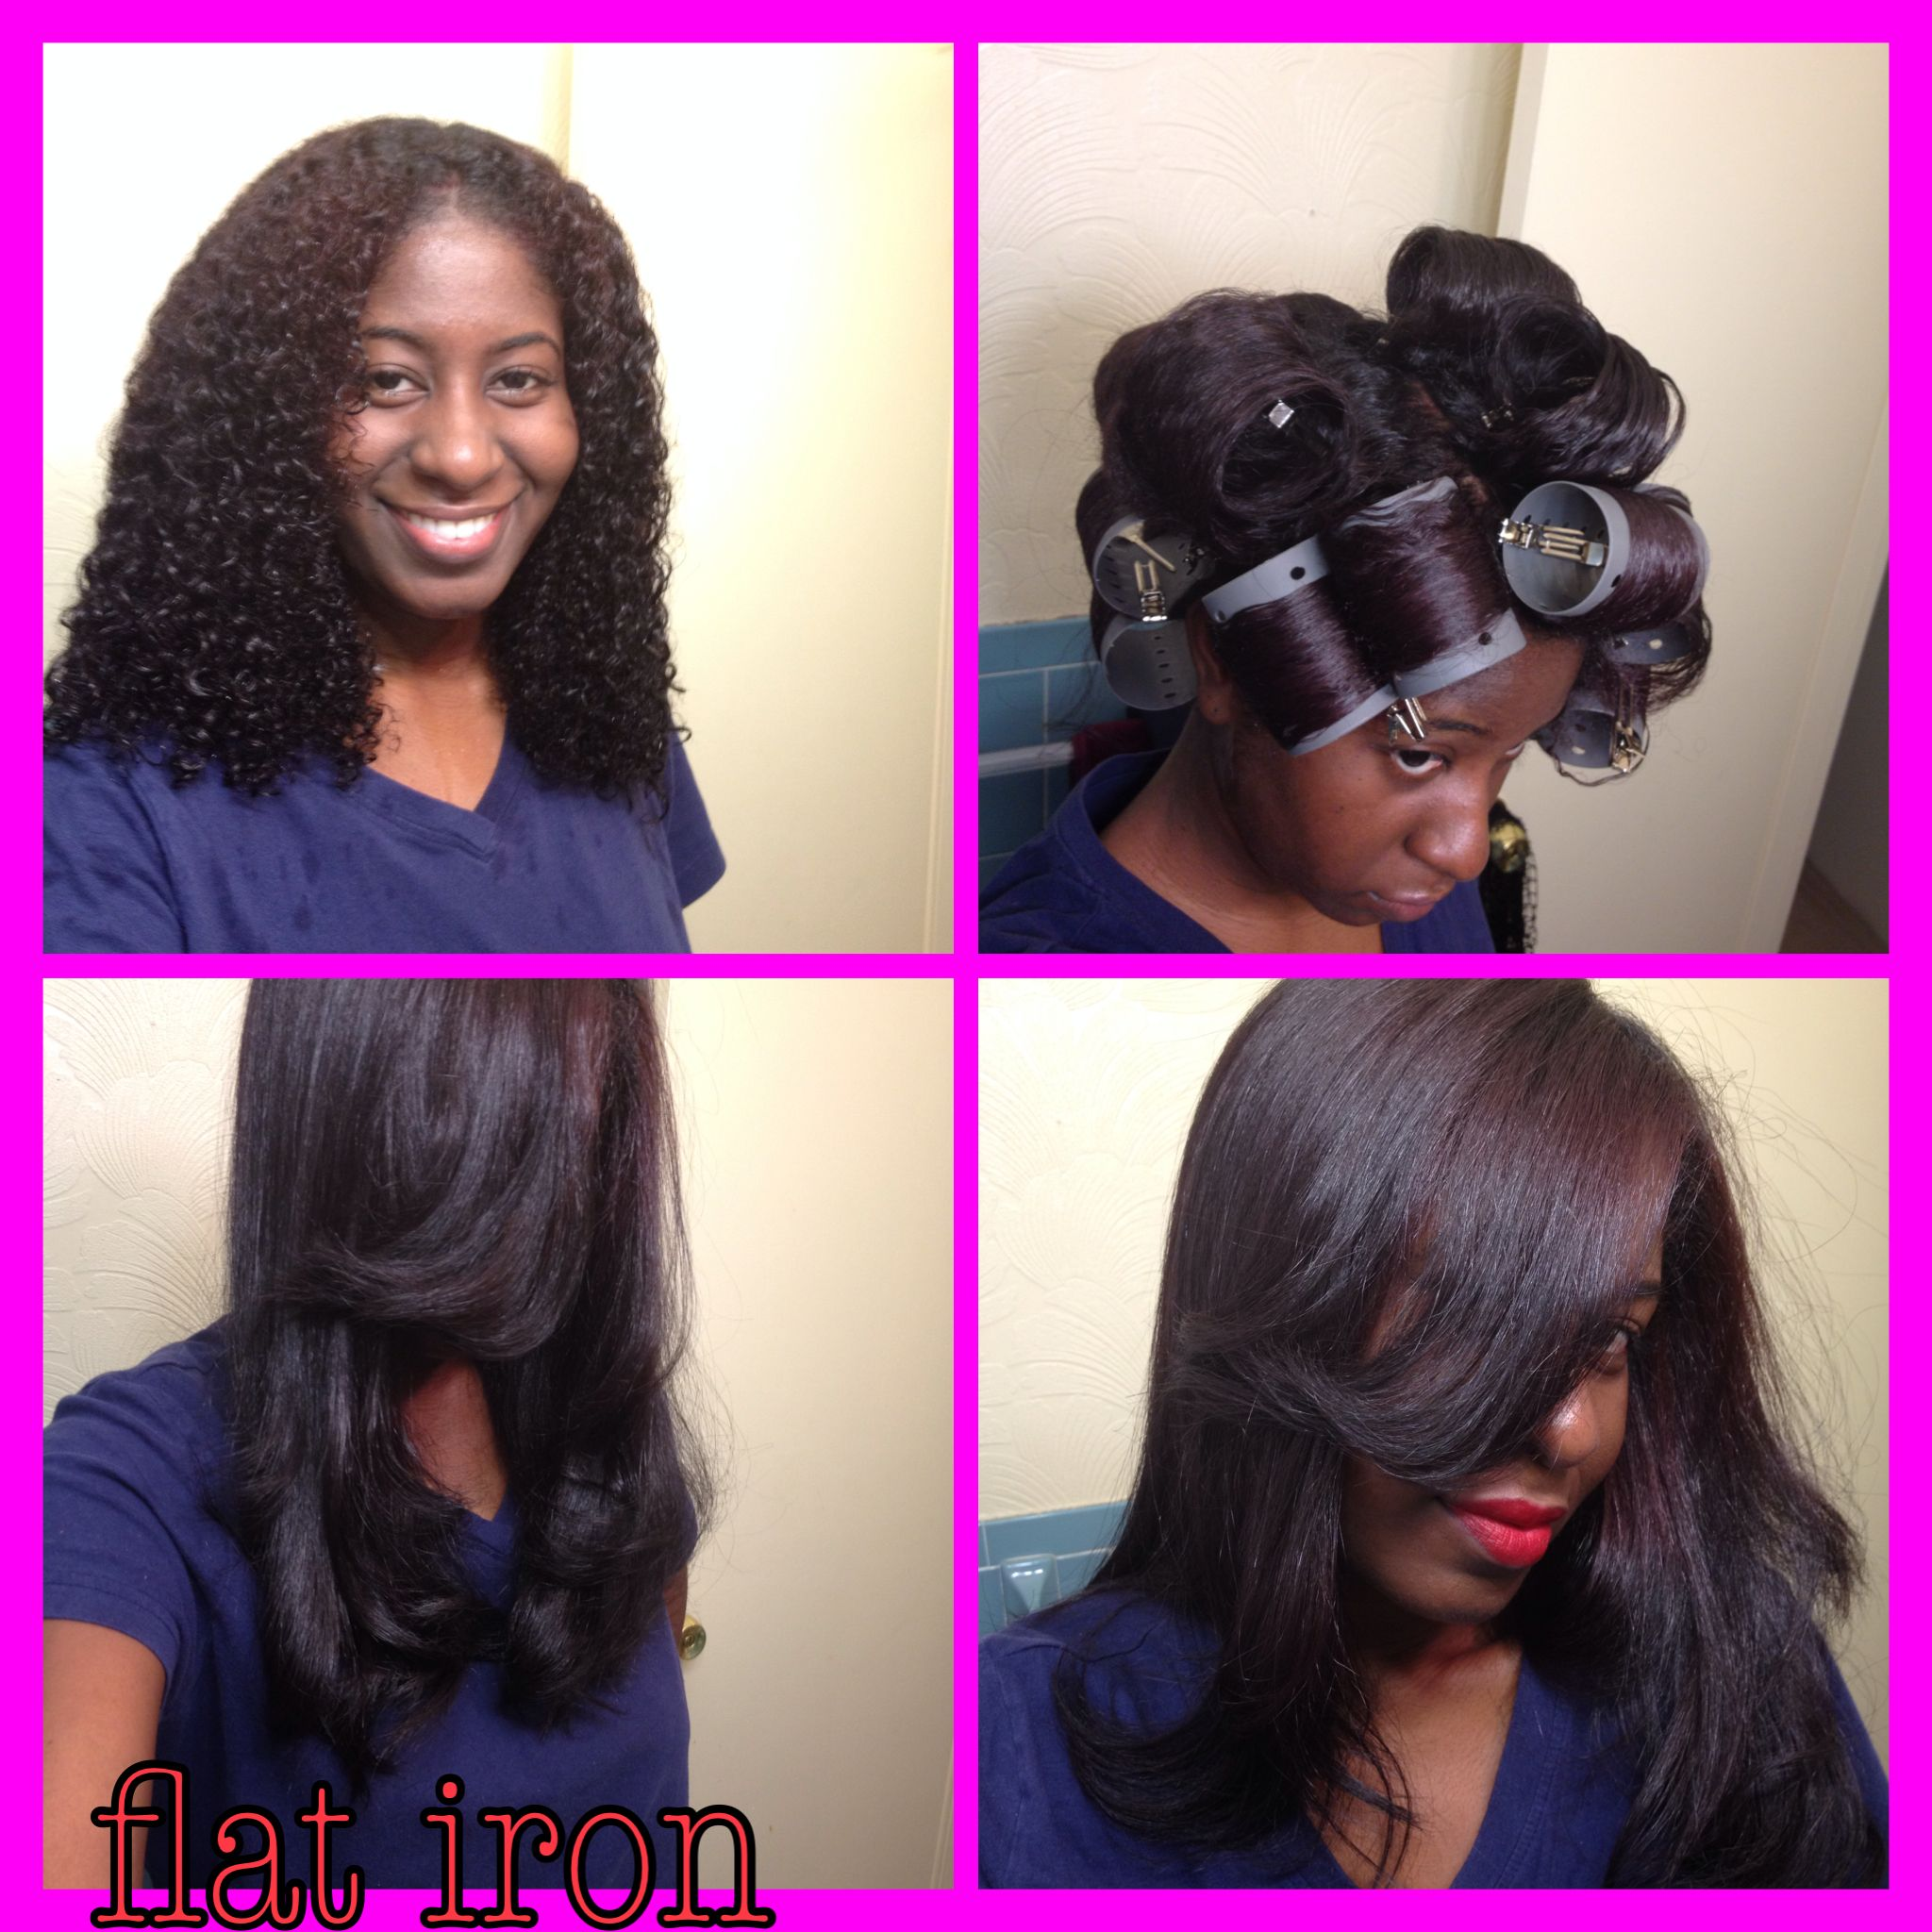 washed and deep conditioned natural hair. add leave-in (chi